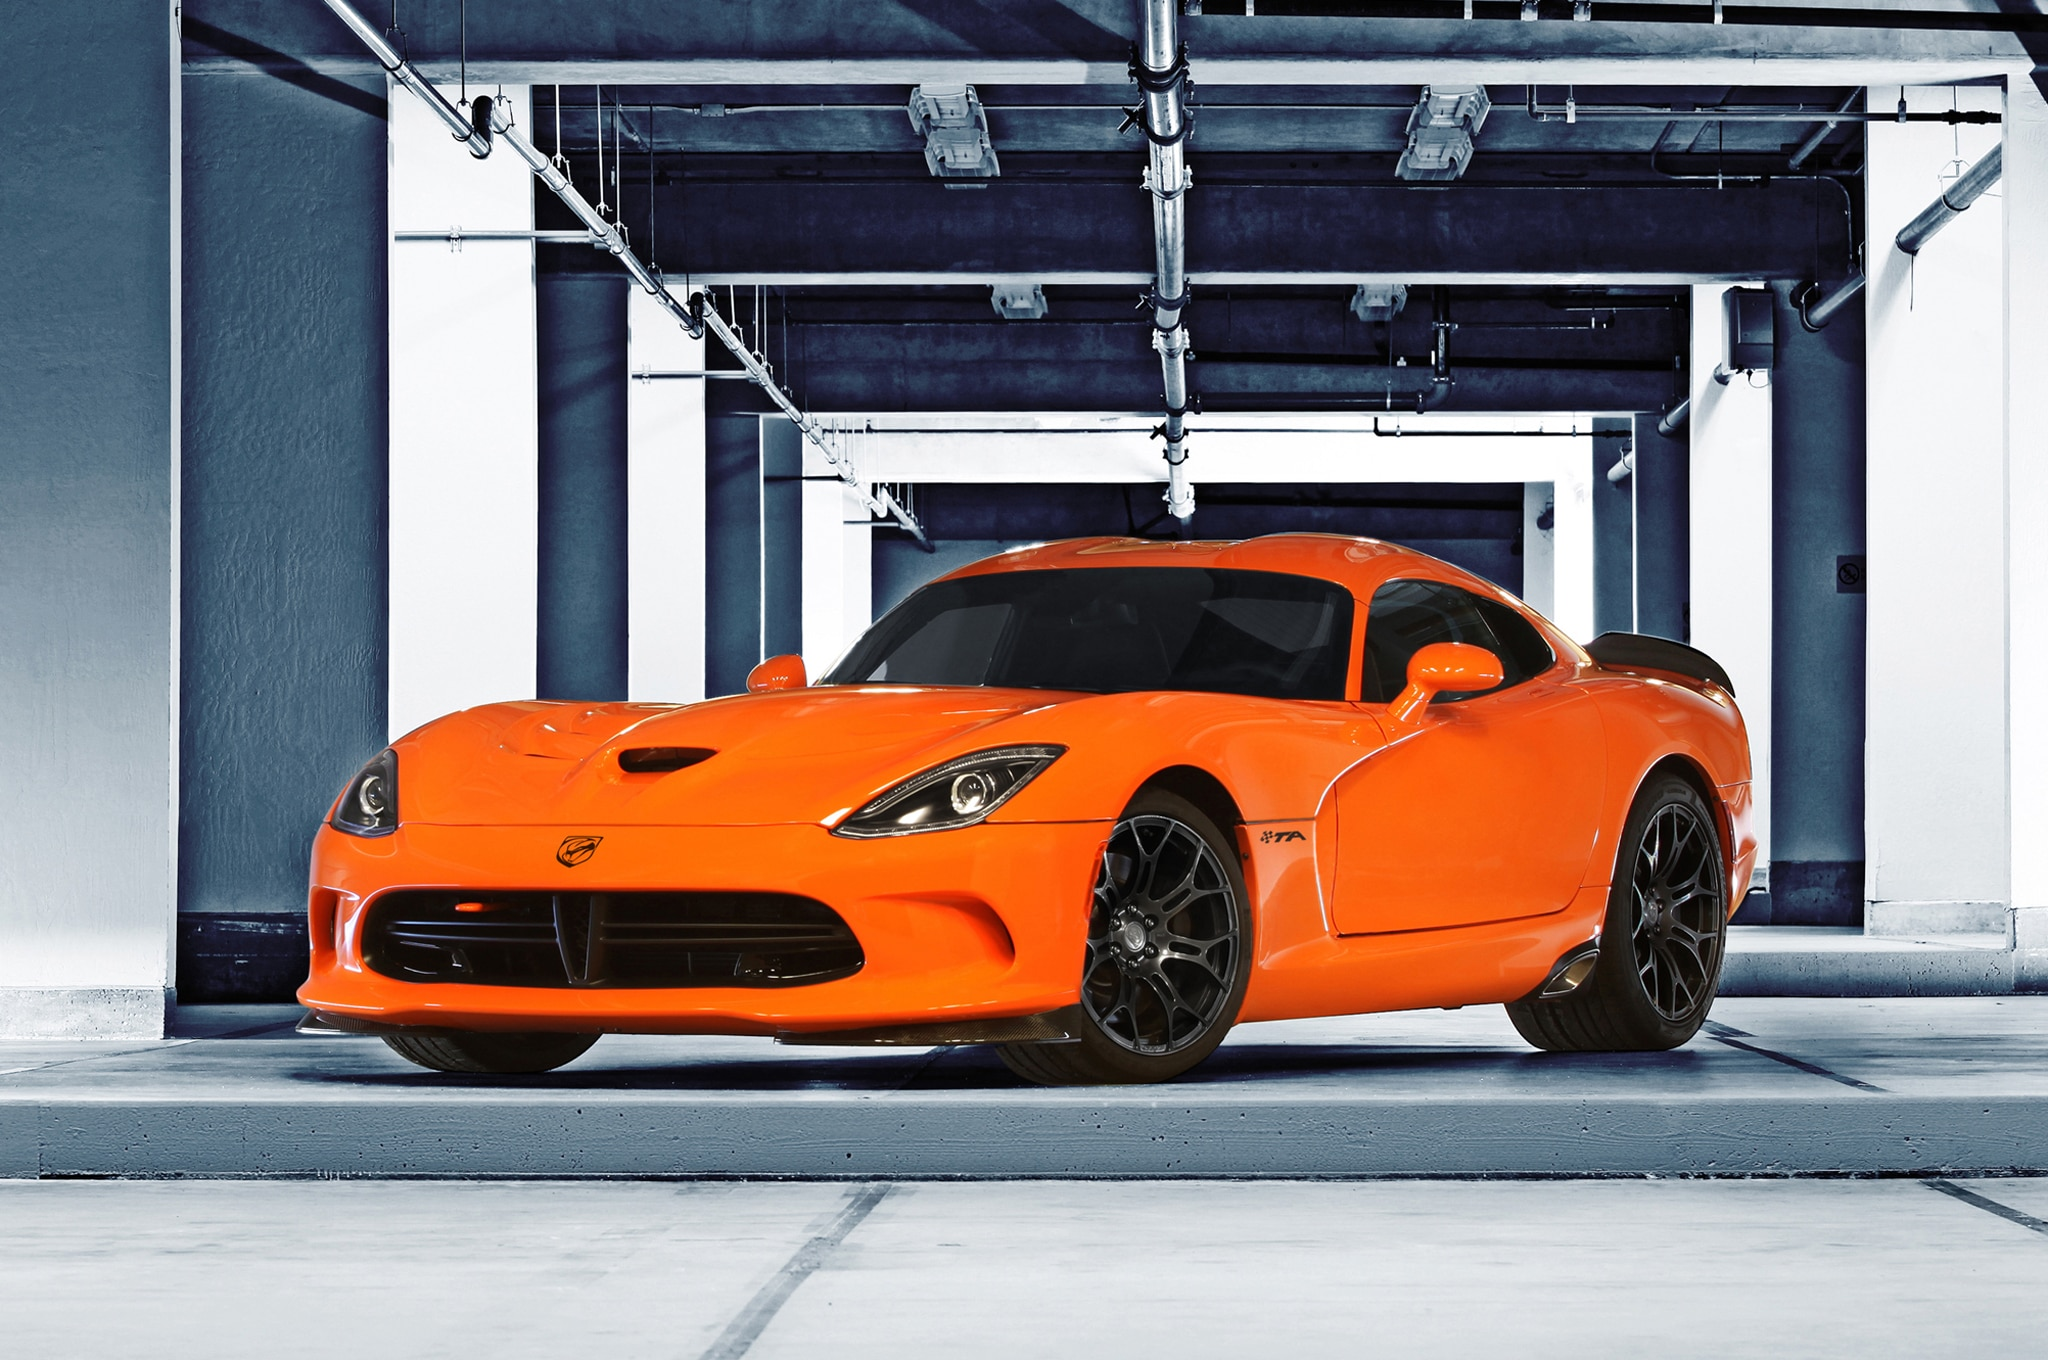 2014 Srt Viper Front Three Quarters 21